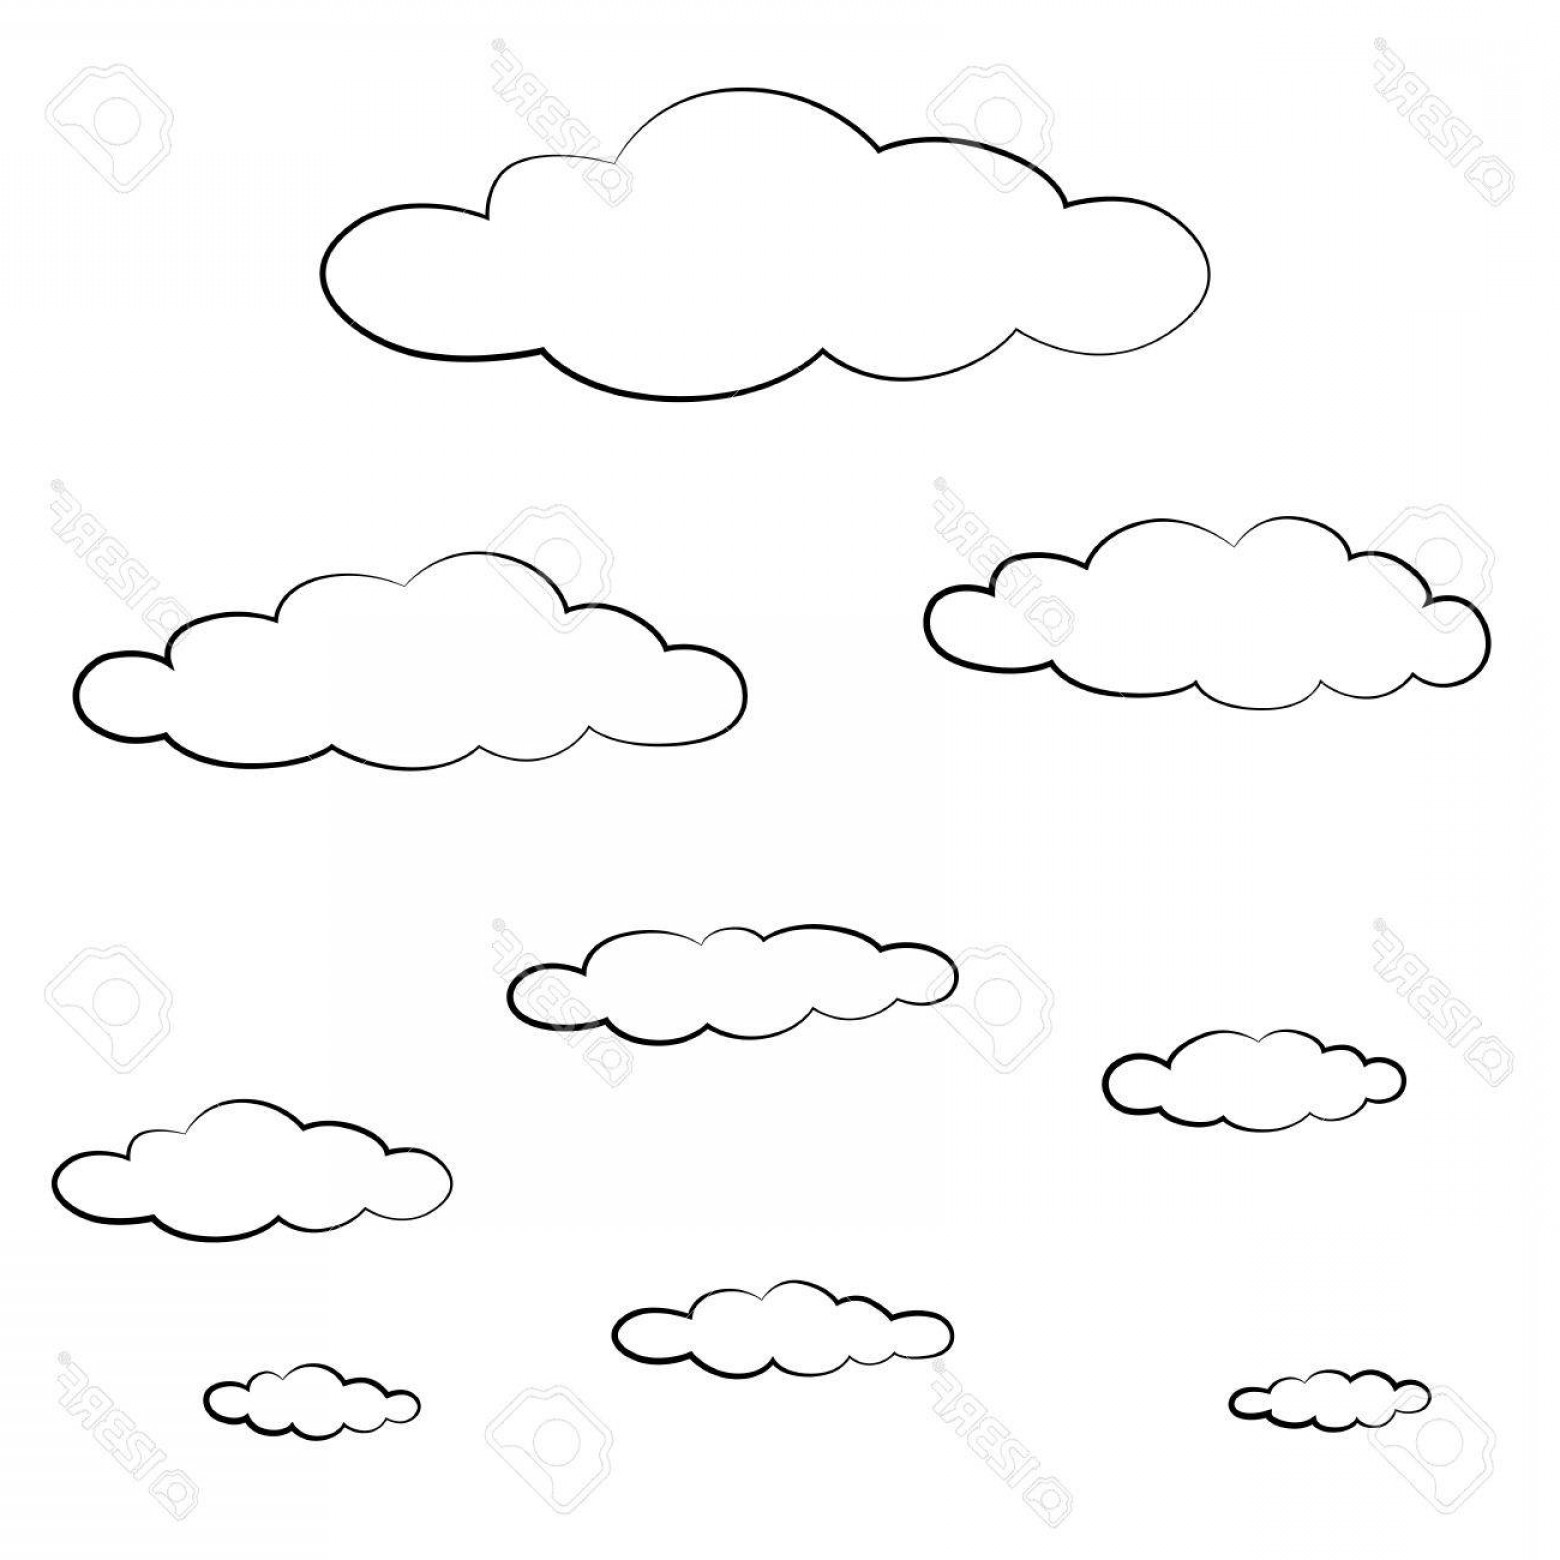 Cloud Outline Vector Black And White: Photoblack Outline Vector Cloud On White Background